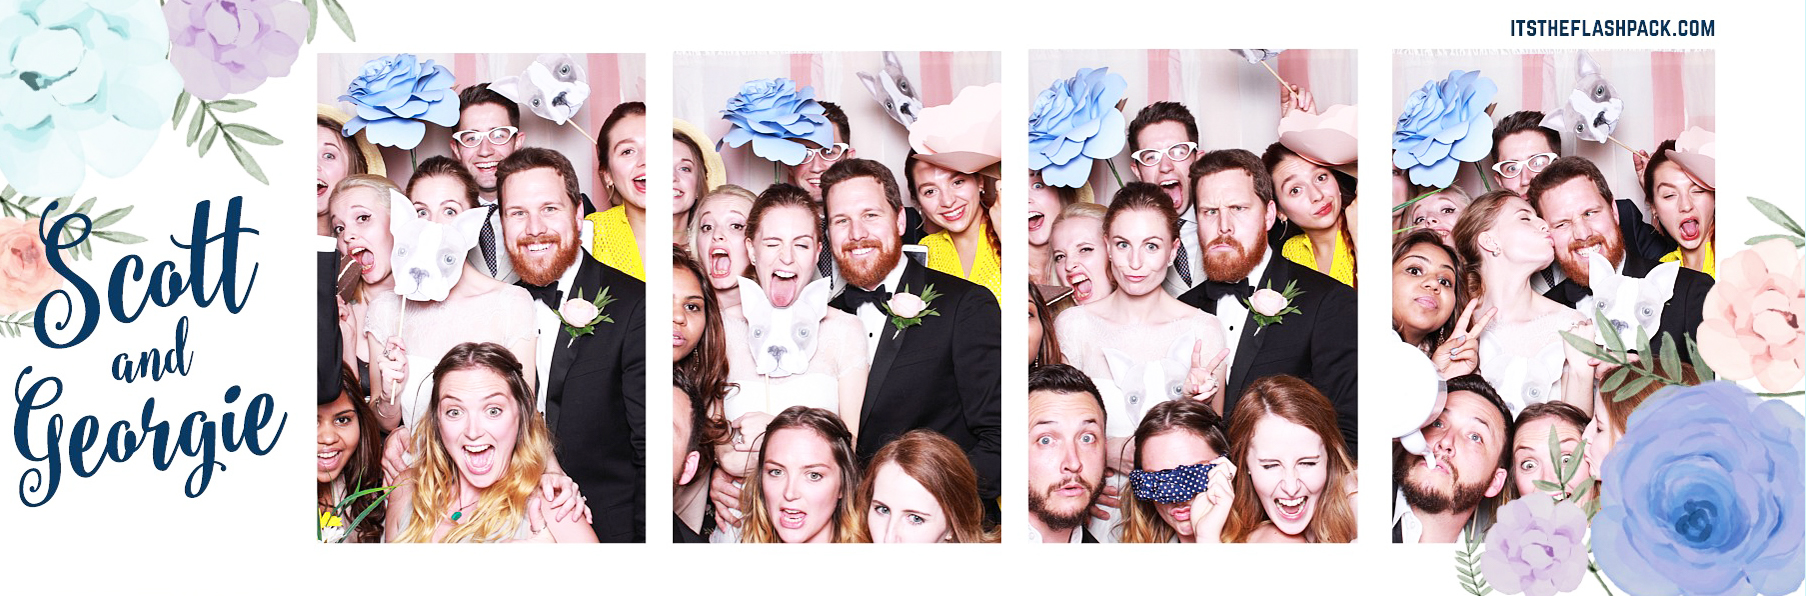 unique wedding photo booths from the flash pack rock my wedding